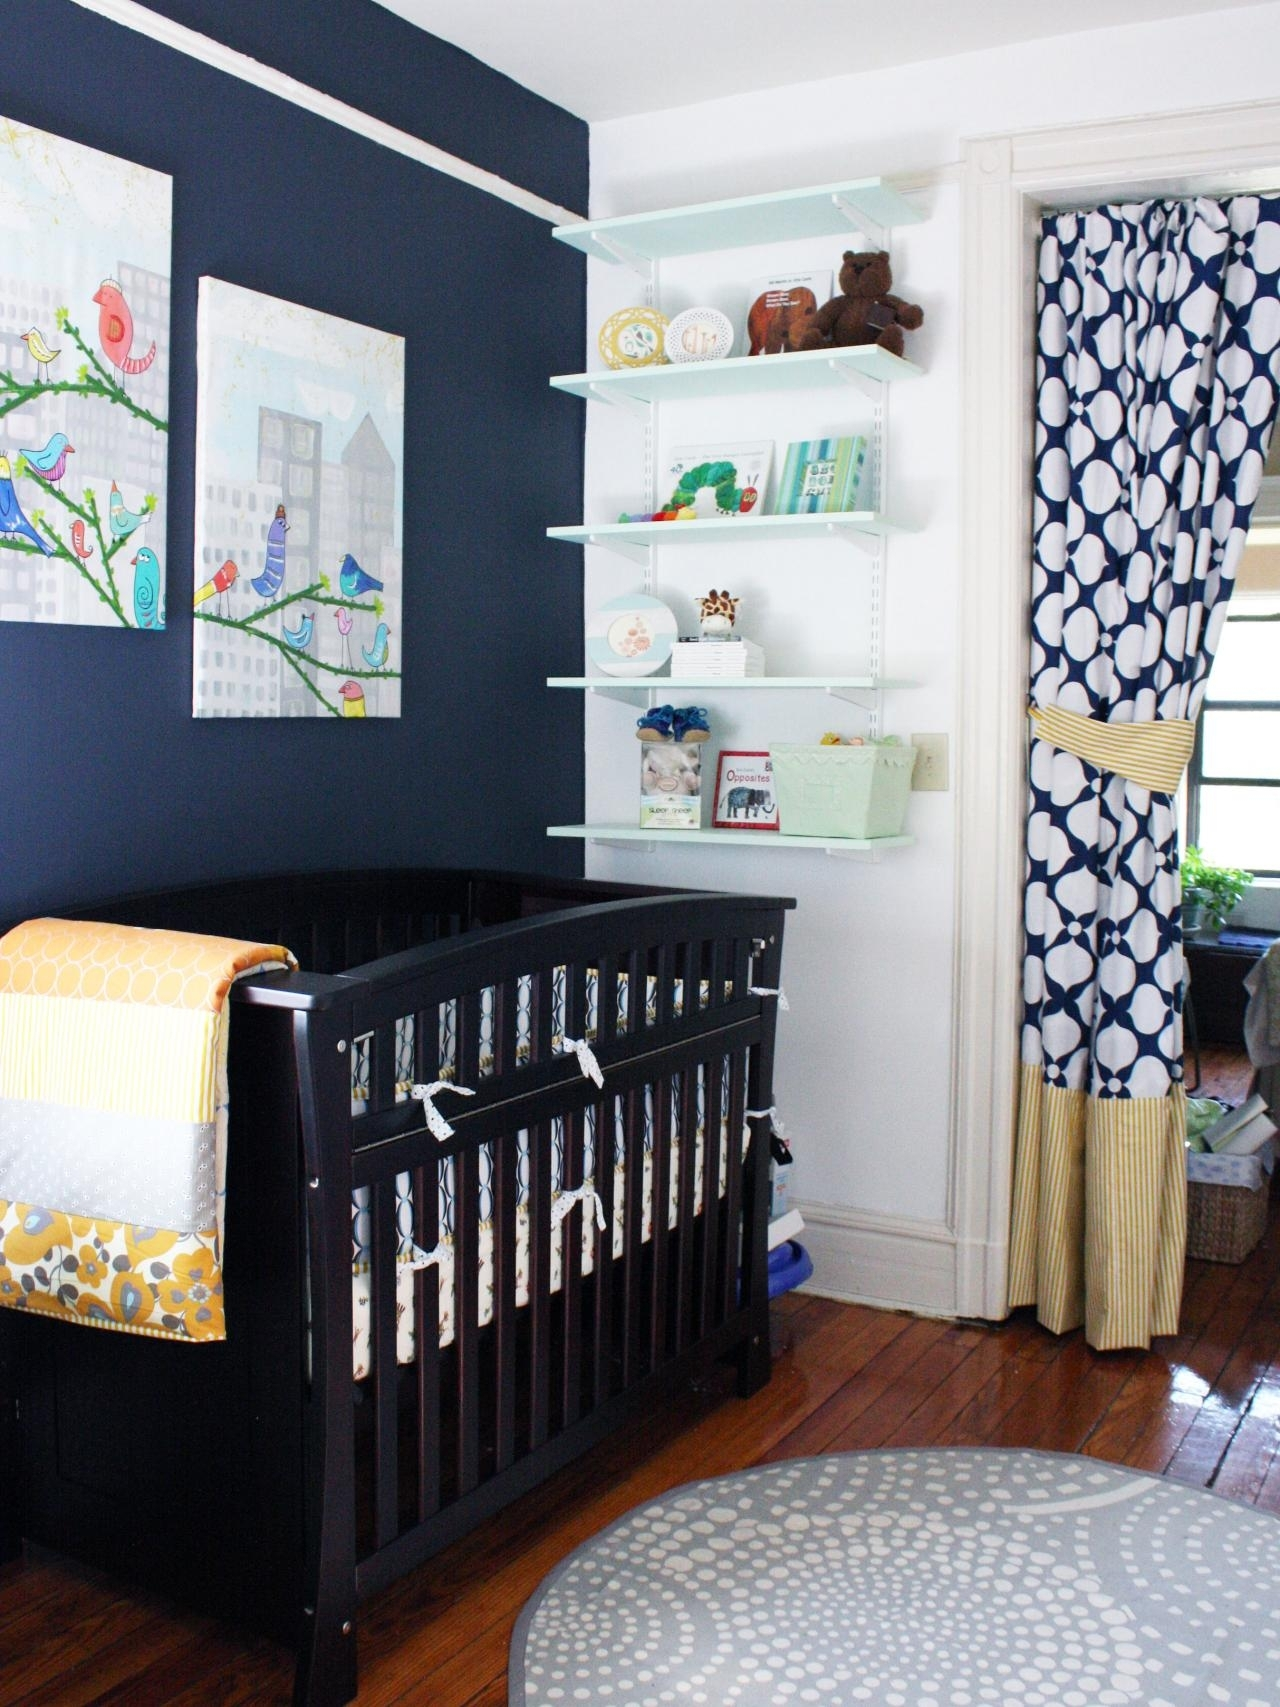 plan a small-space nursery | hgtv